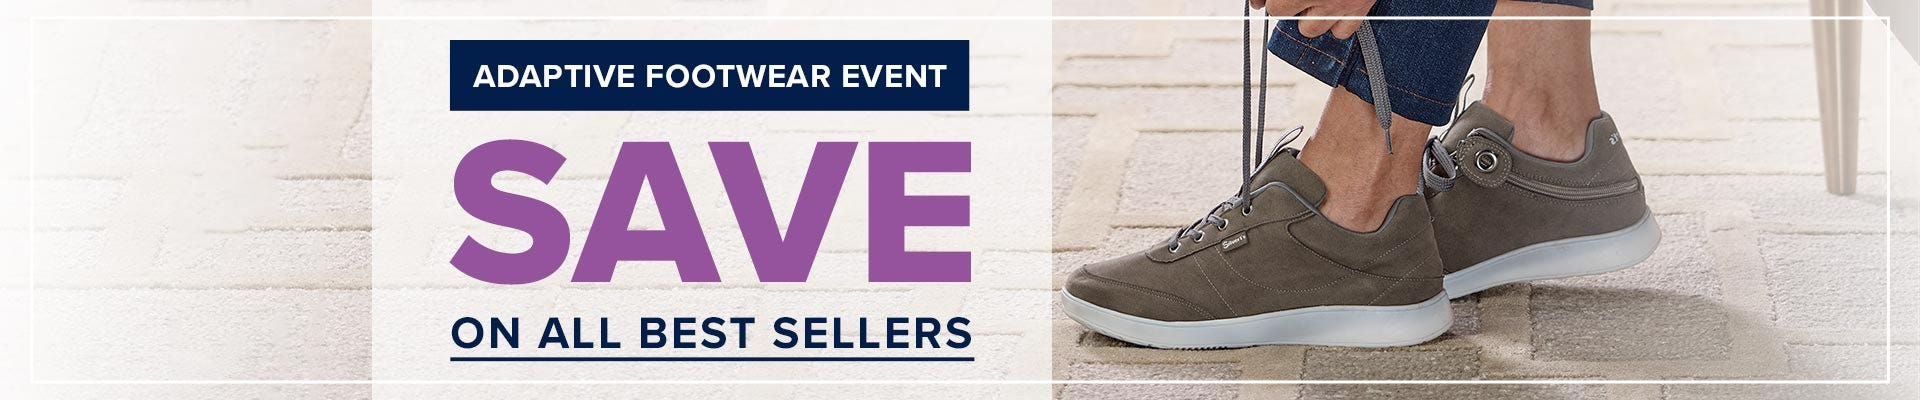 Adaptive Footwear Event - Save on all bestselles